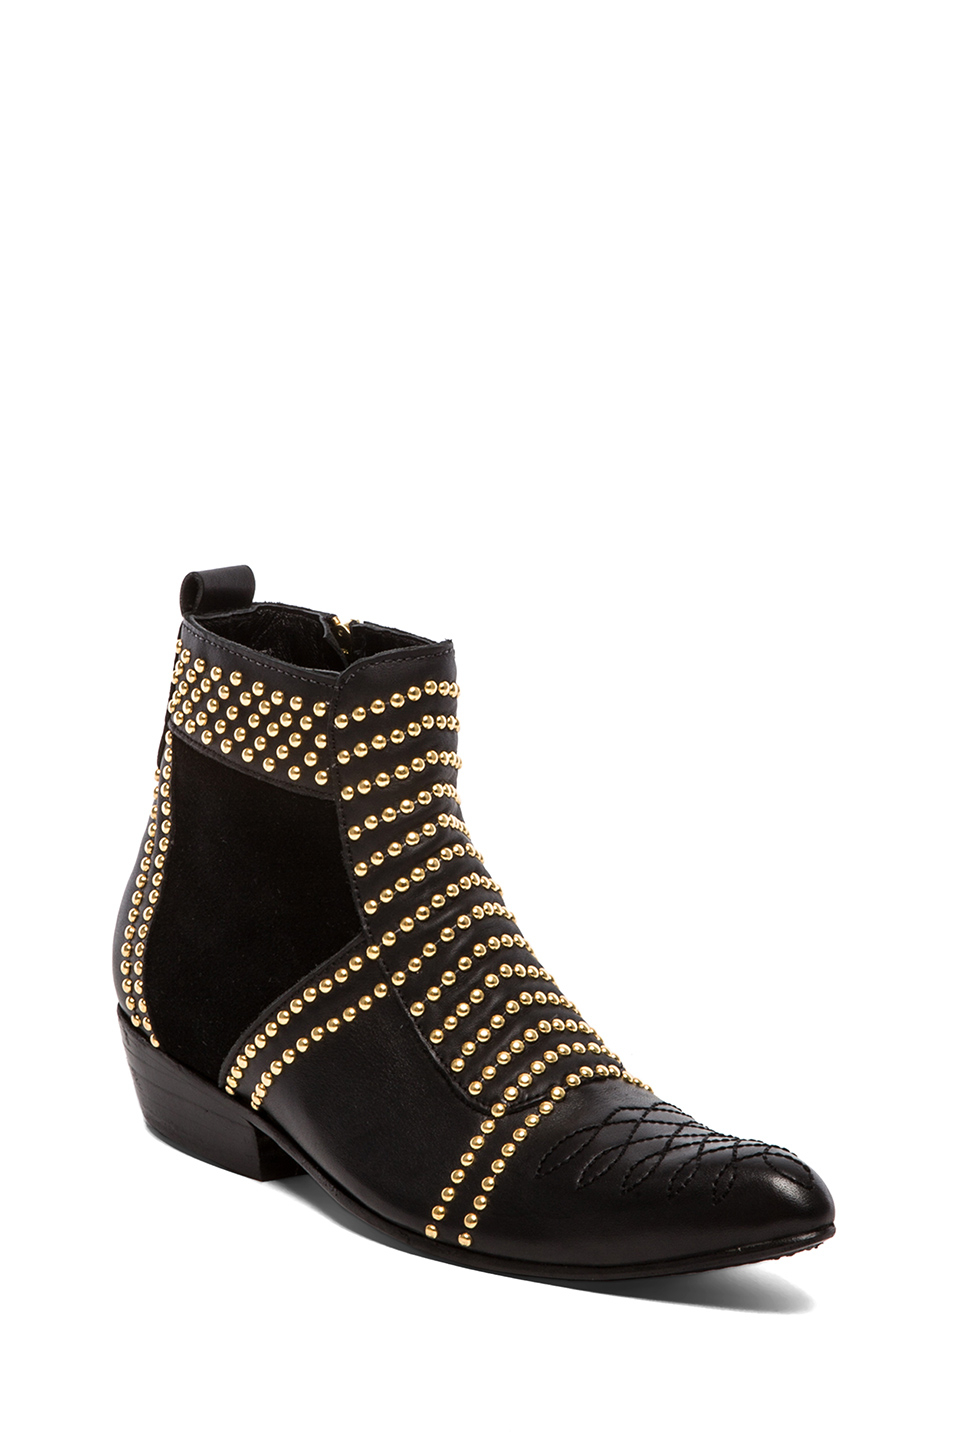 Black Suede Shoes With Gold Studs